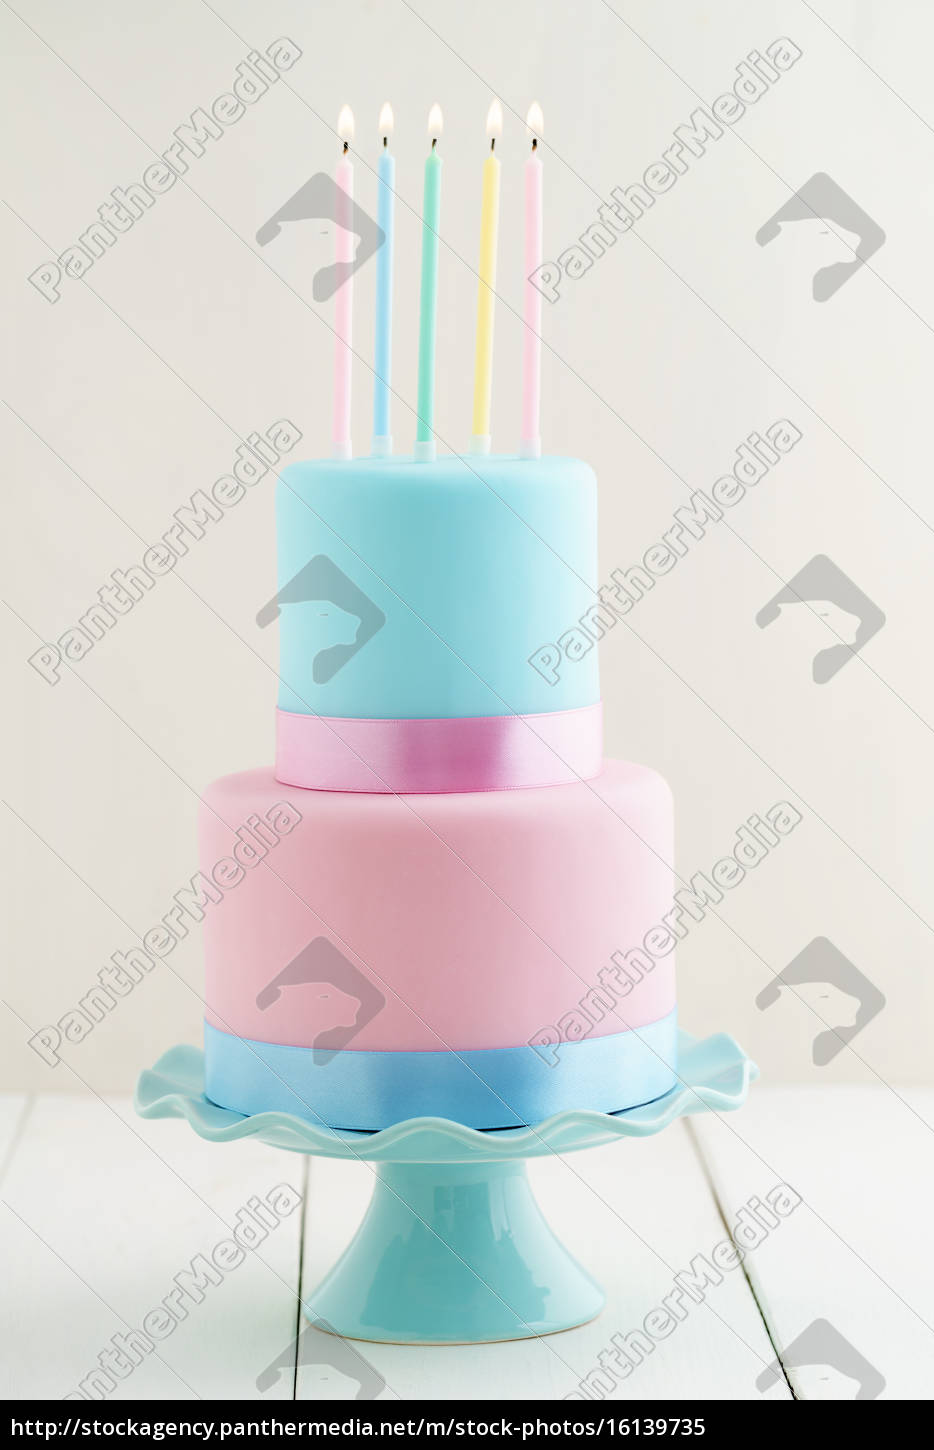 Astounding Birthday Cake With Candles Stock Photo 16139735 Birthday Cards Printable Benkemecafe Filternl